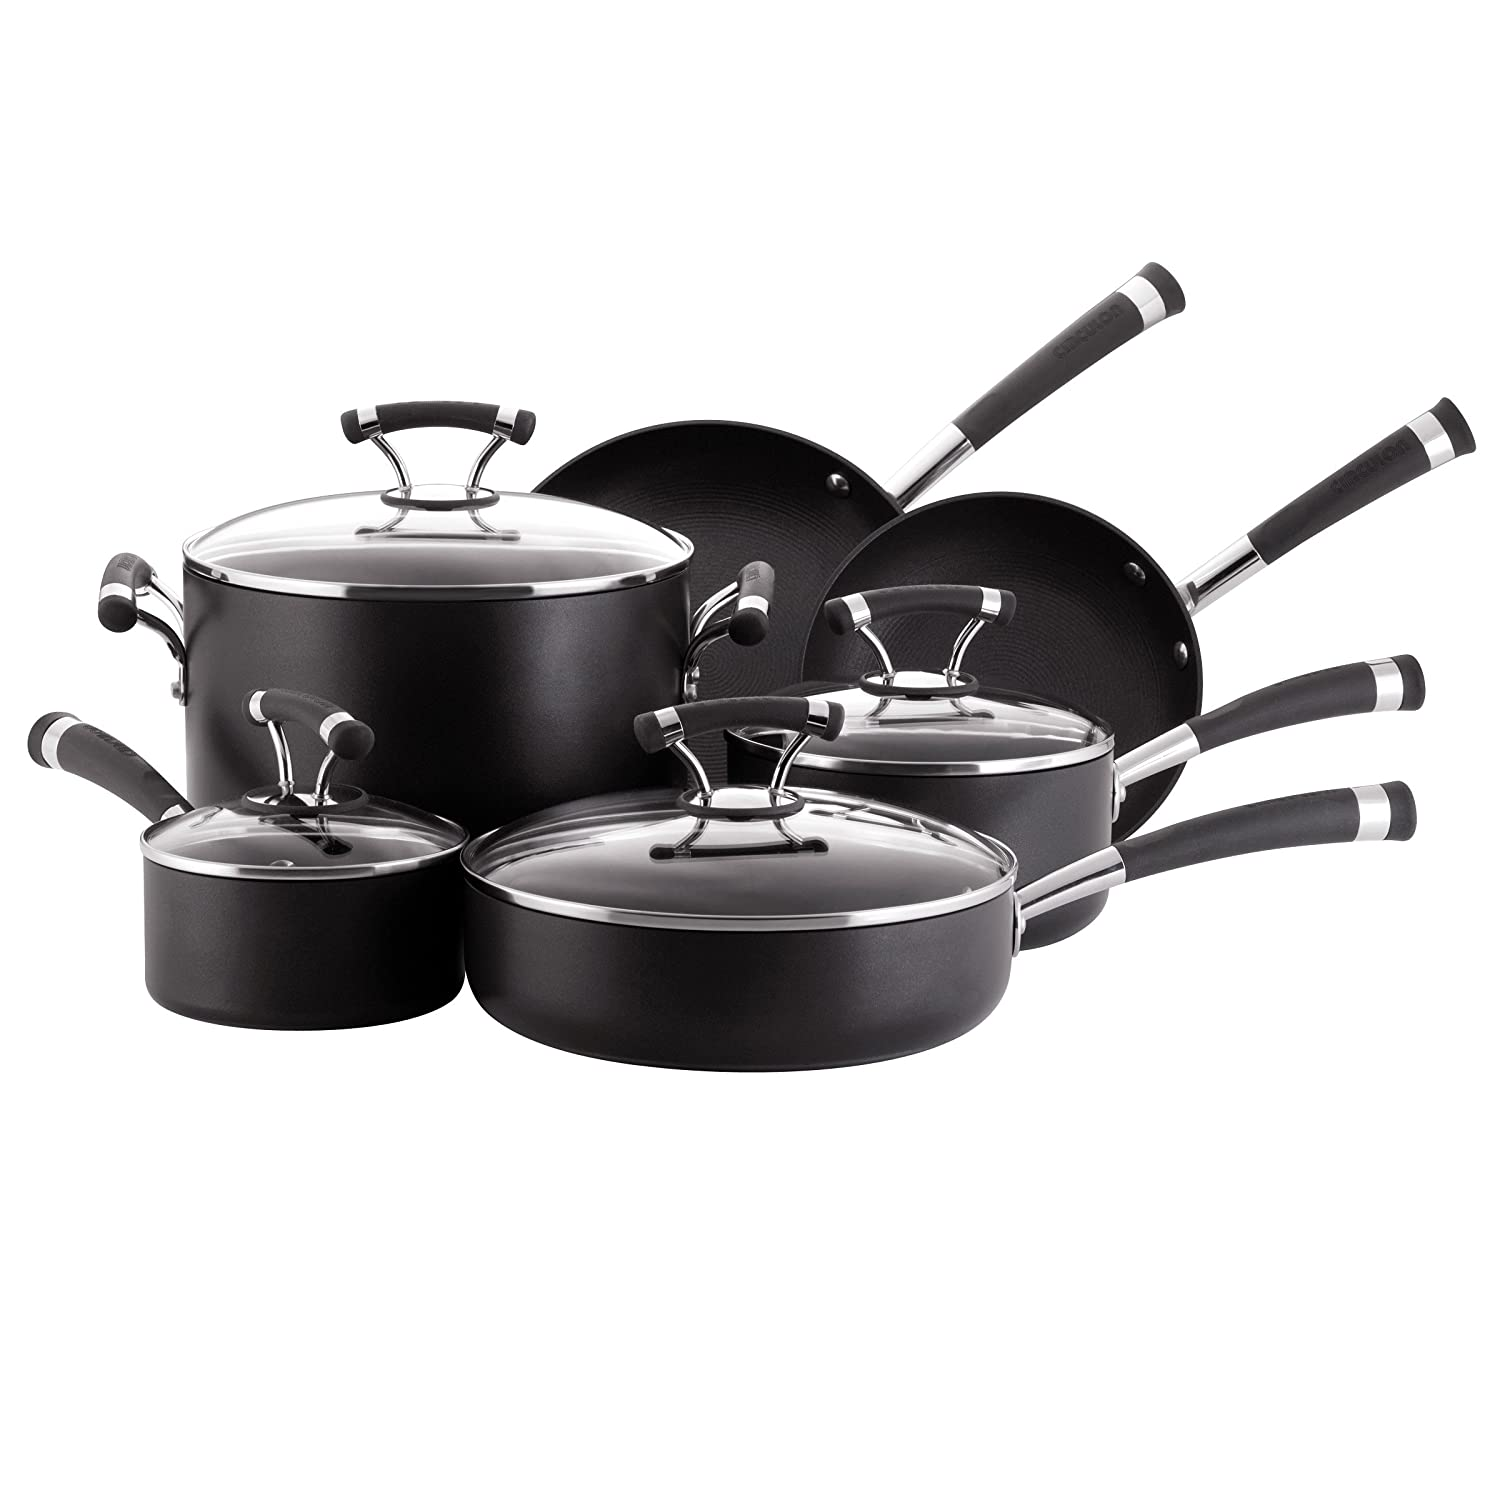 Top 5 Best Cookware Under $200 (2020 Reviews & Buying Guide) 4